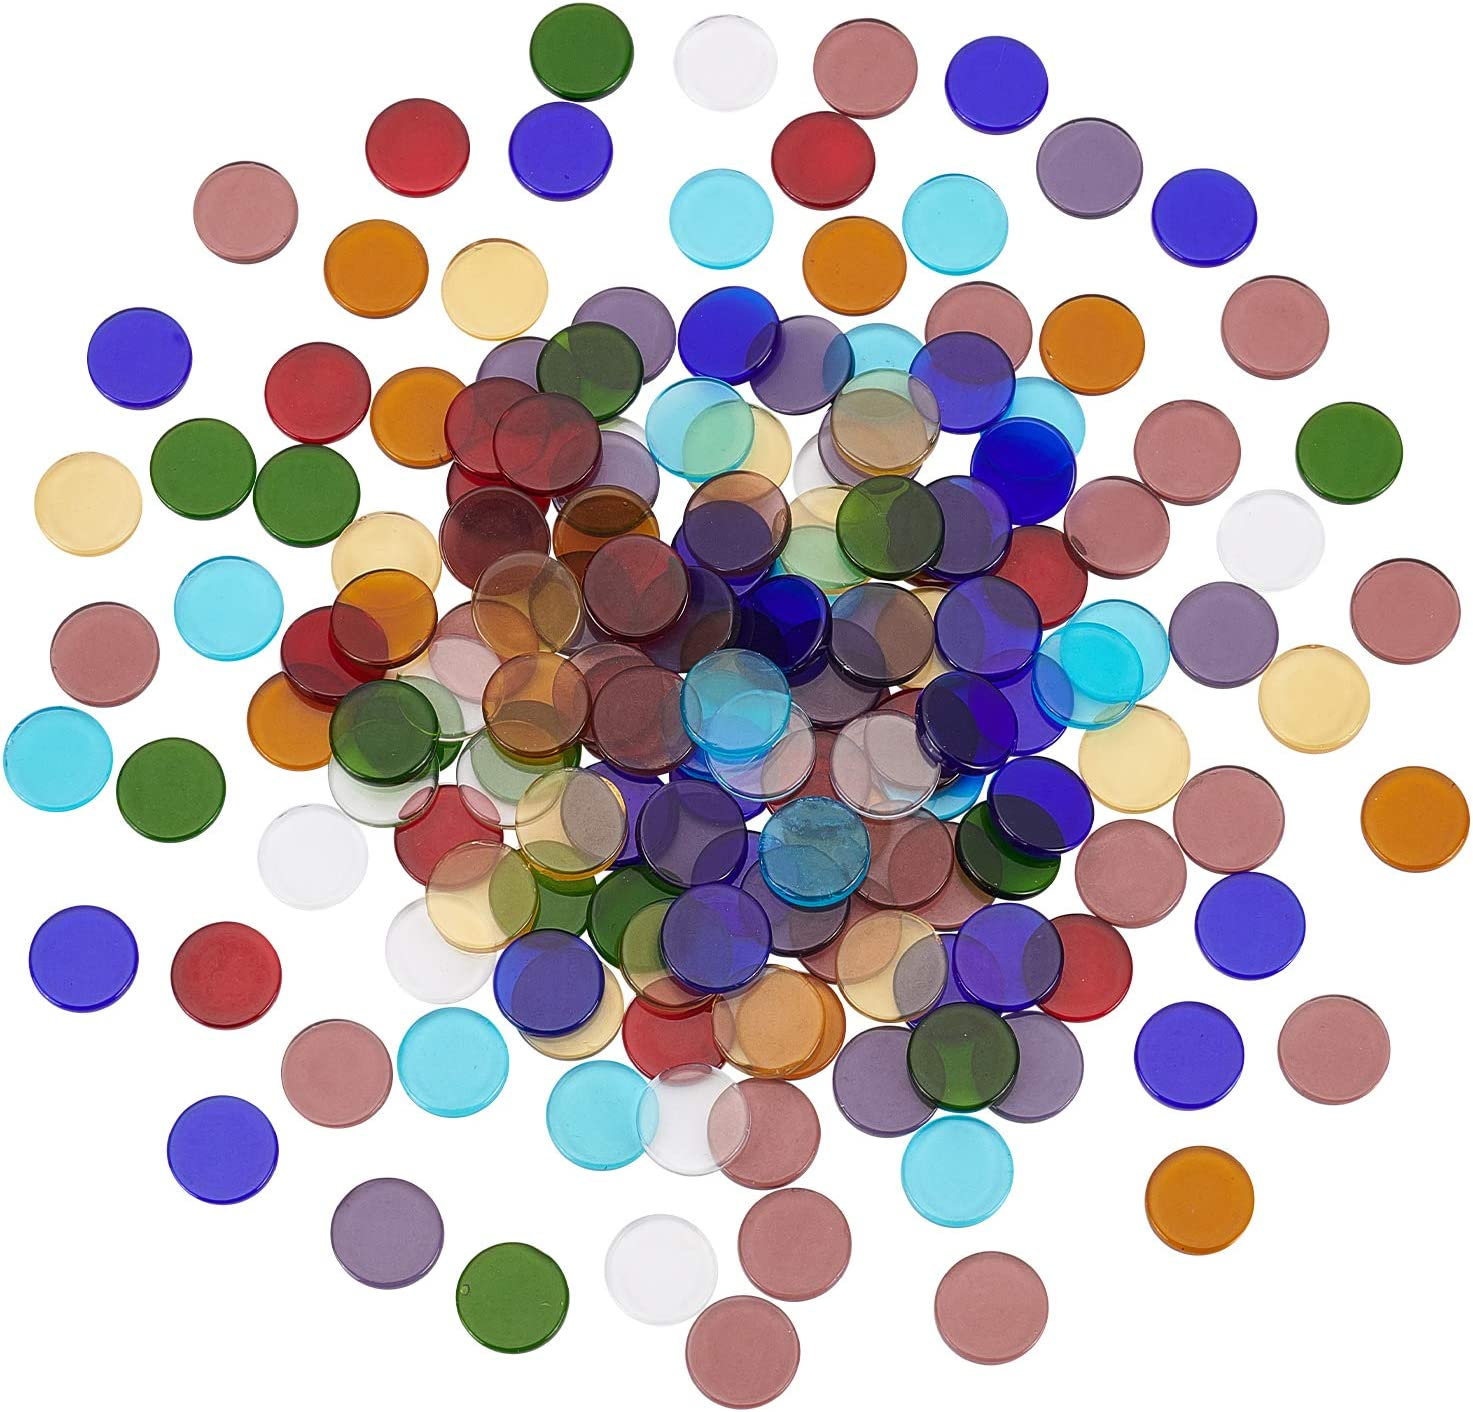 SUPERFINDINGS About 180pcs Flat Round Glass Mosaic Tiles Stained Glass Assorted Mixed Colors Perfect for Art Craft and Home Decorations